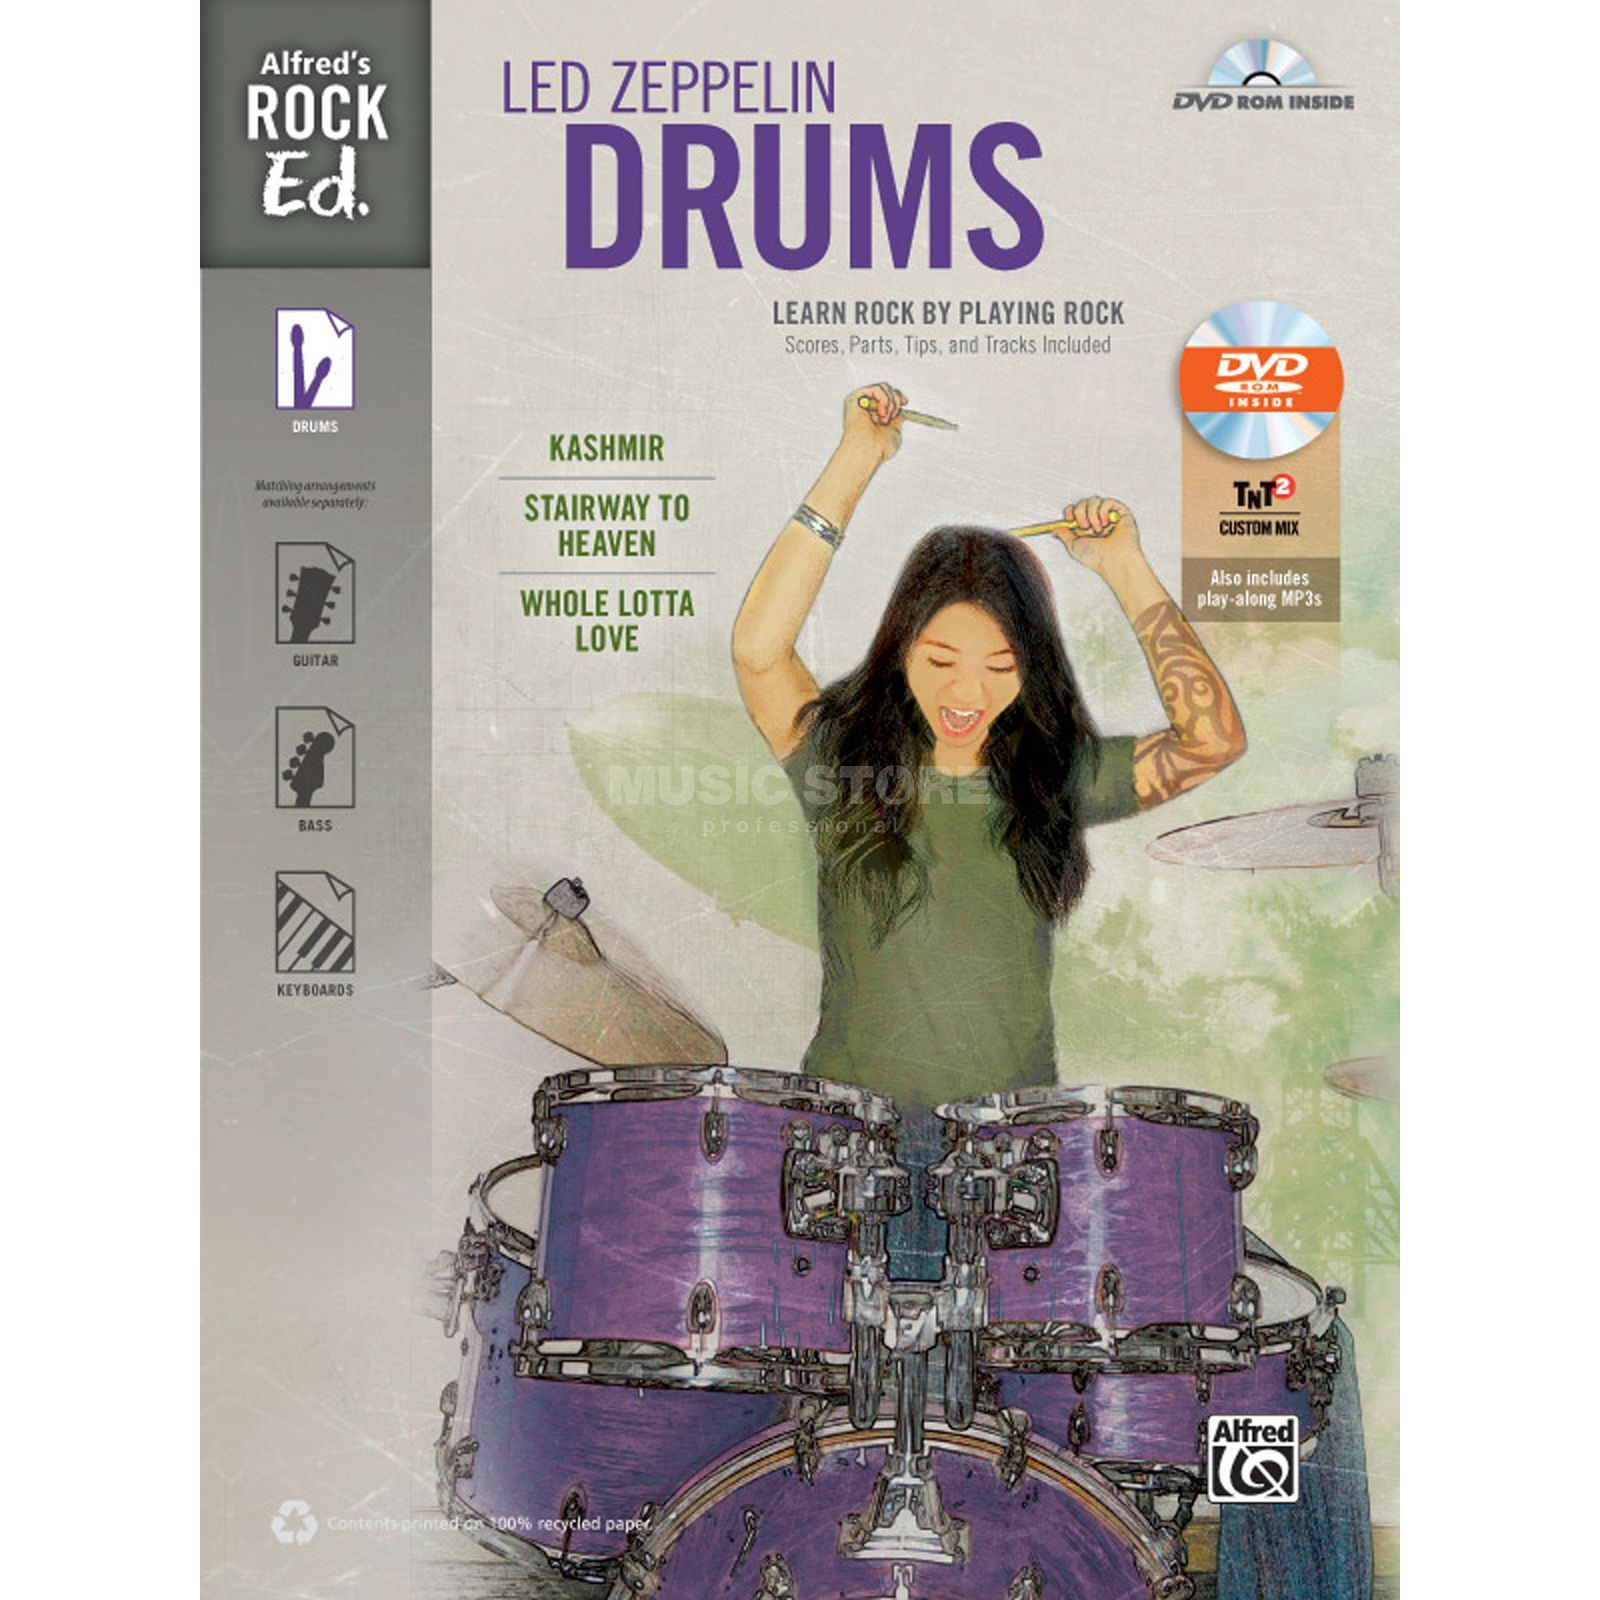 Alfred Music Alfred's Rock Ed.: Led Zeppelin Drums Produktbild